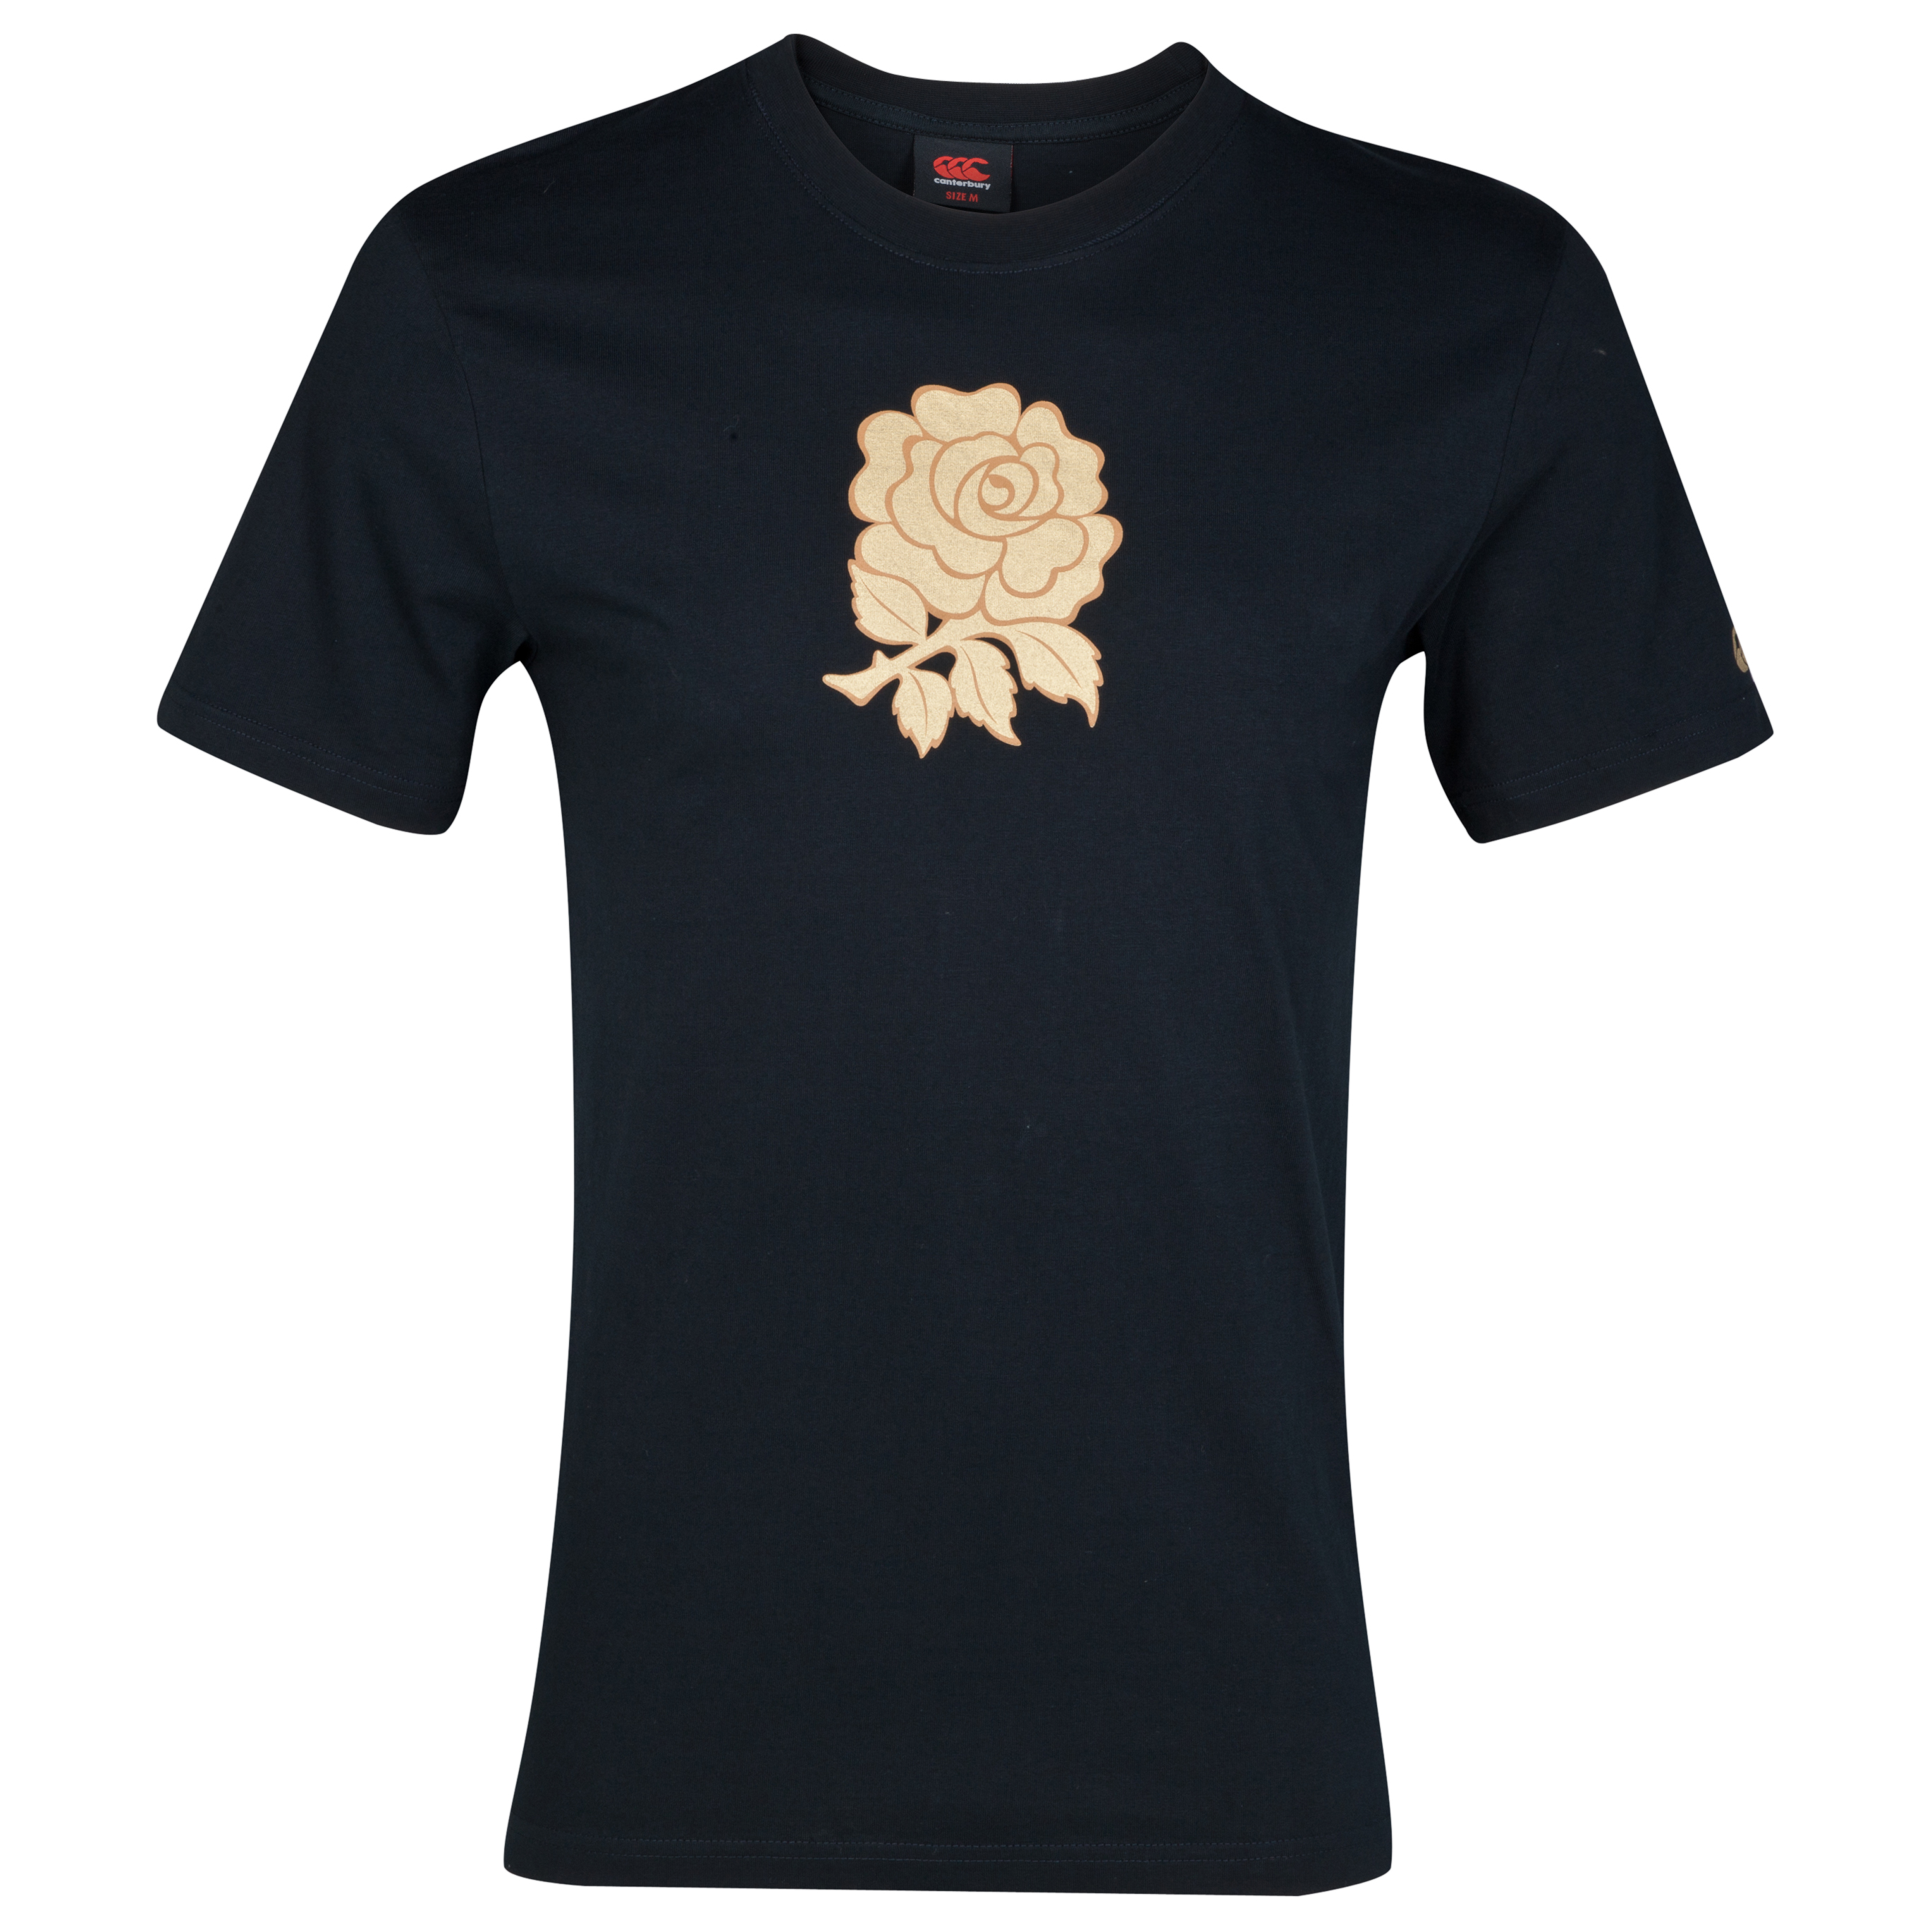 England Graphic Cotton T-Shirt - Black